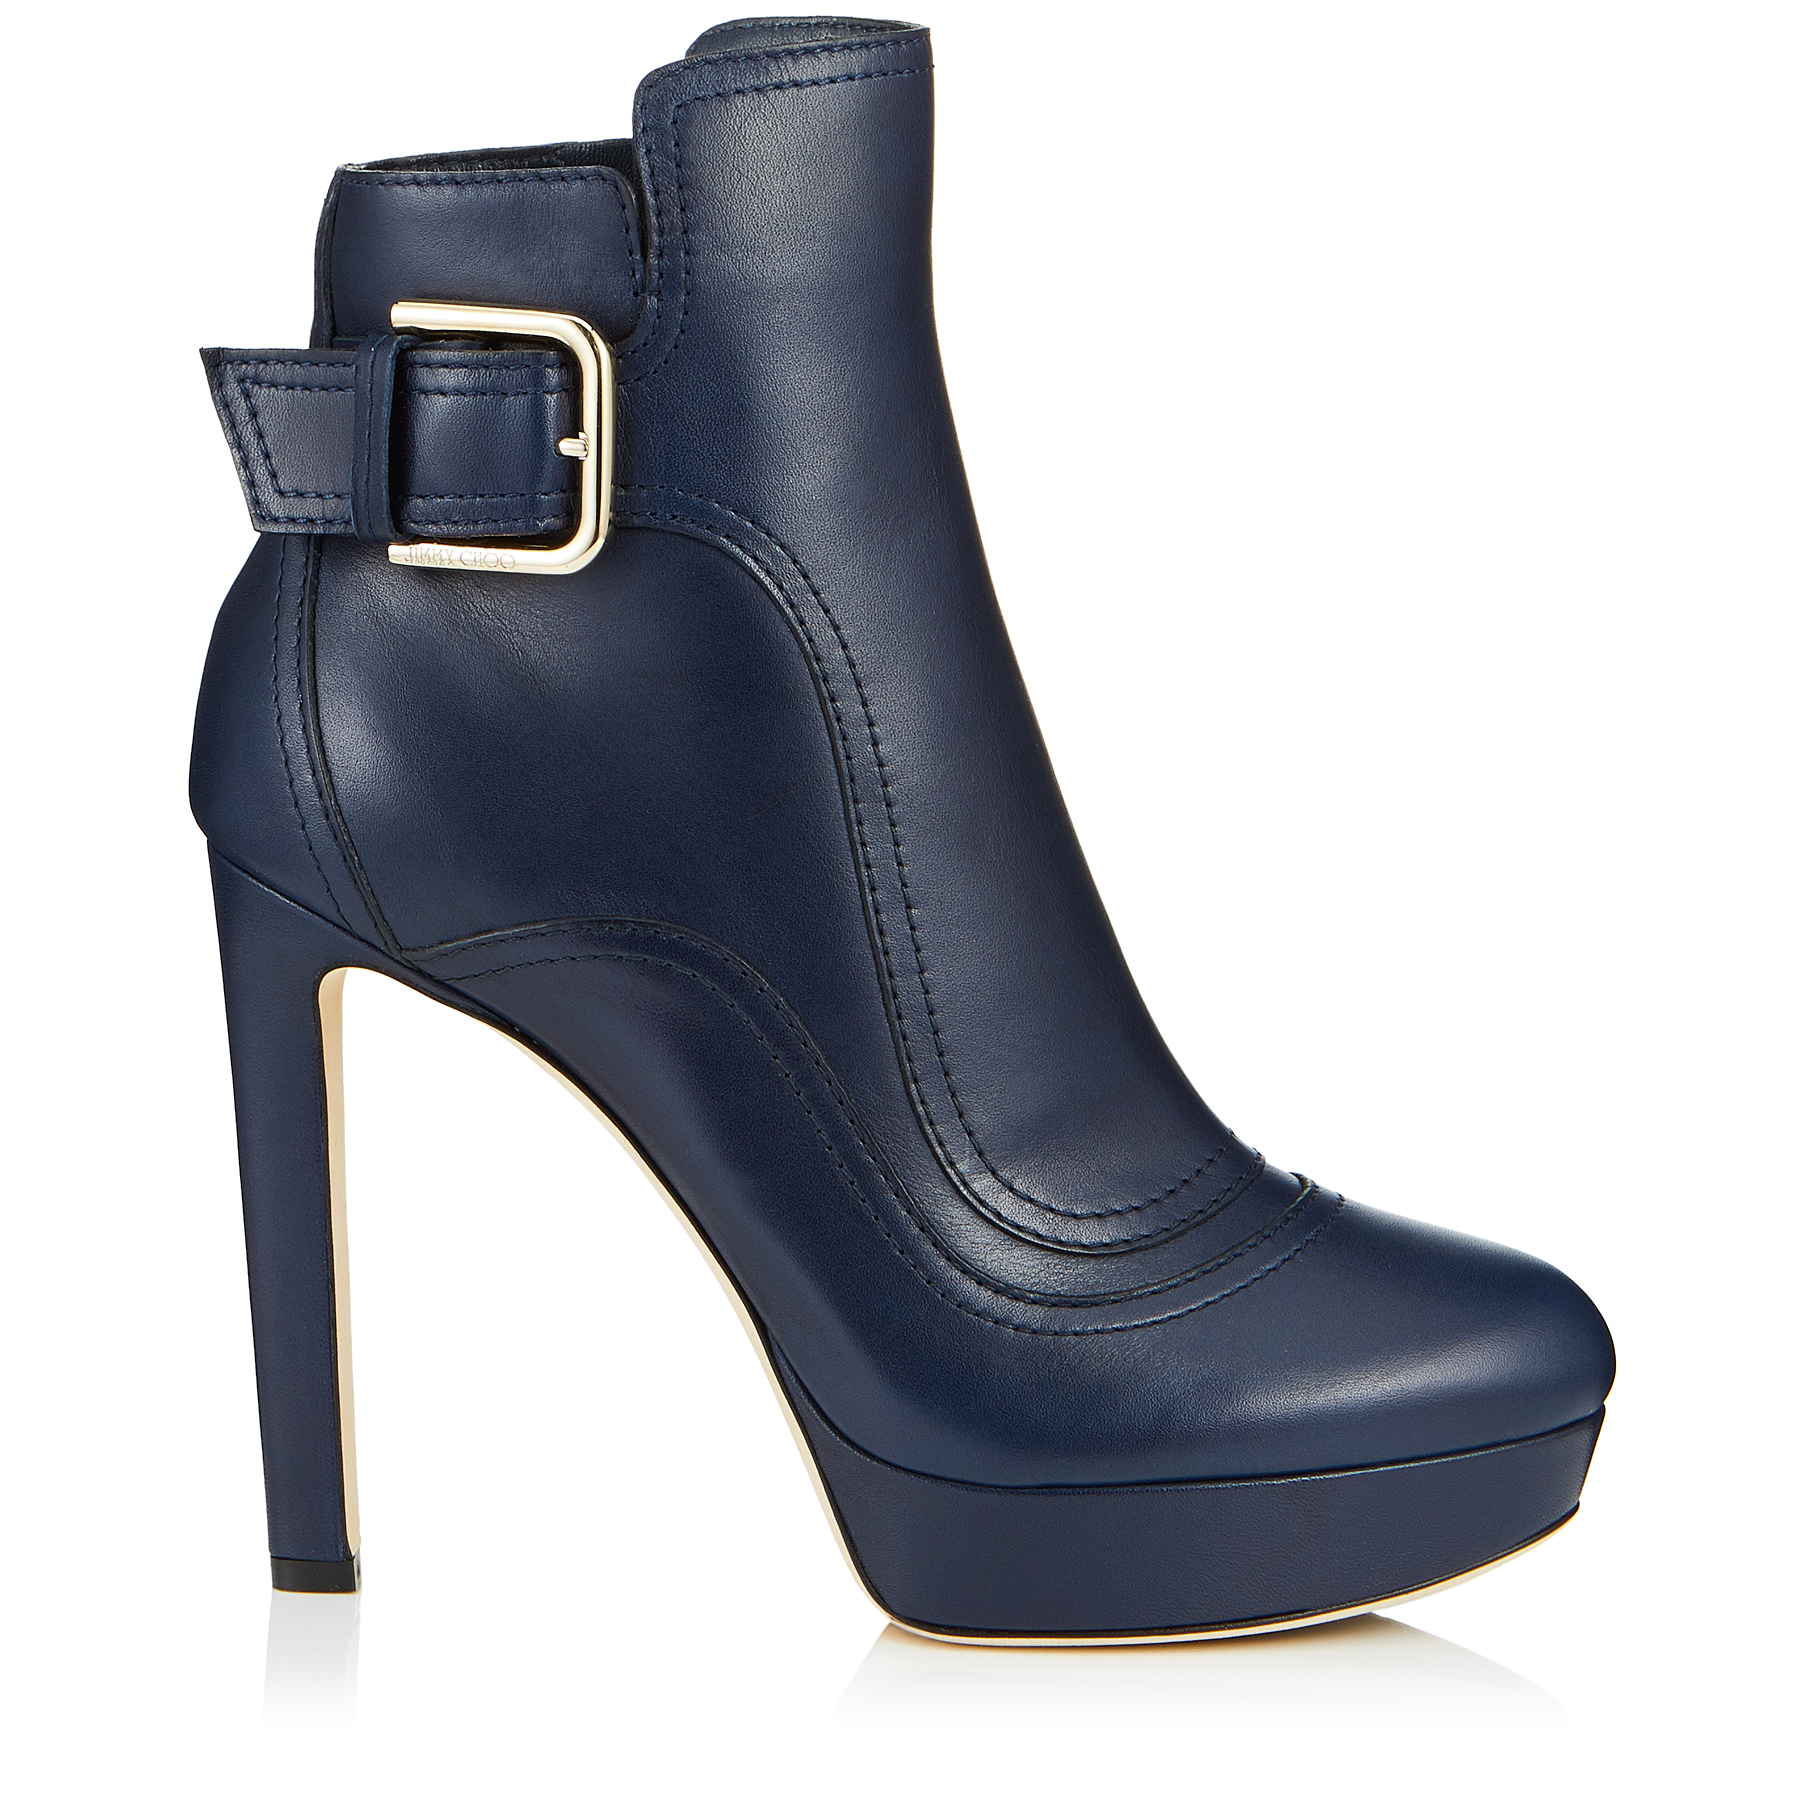 BRITNEY 115 Navy Smooth Leather Platform Booties by Jimmy Choo